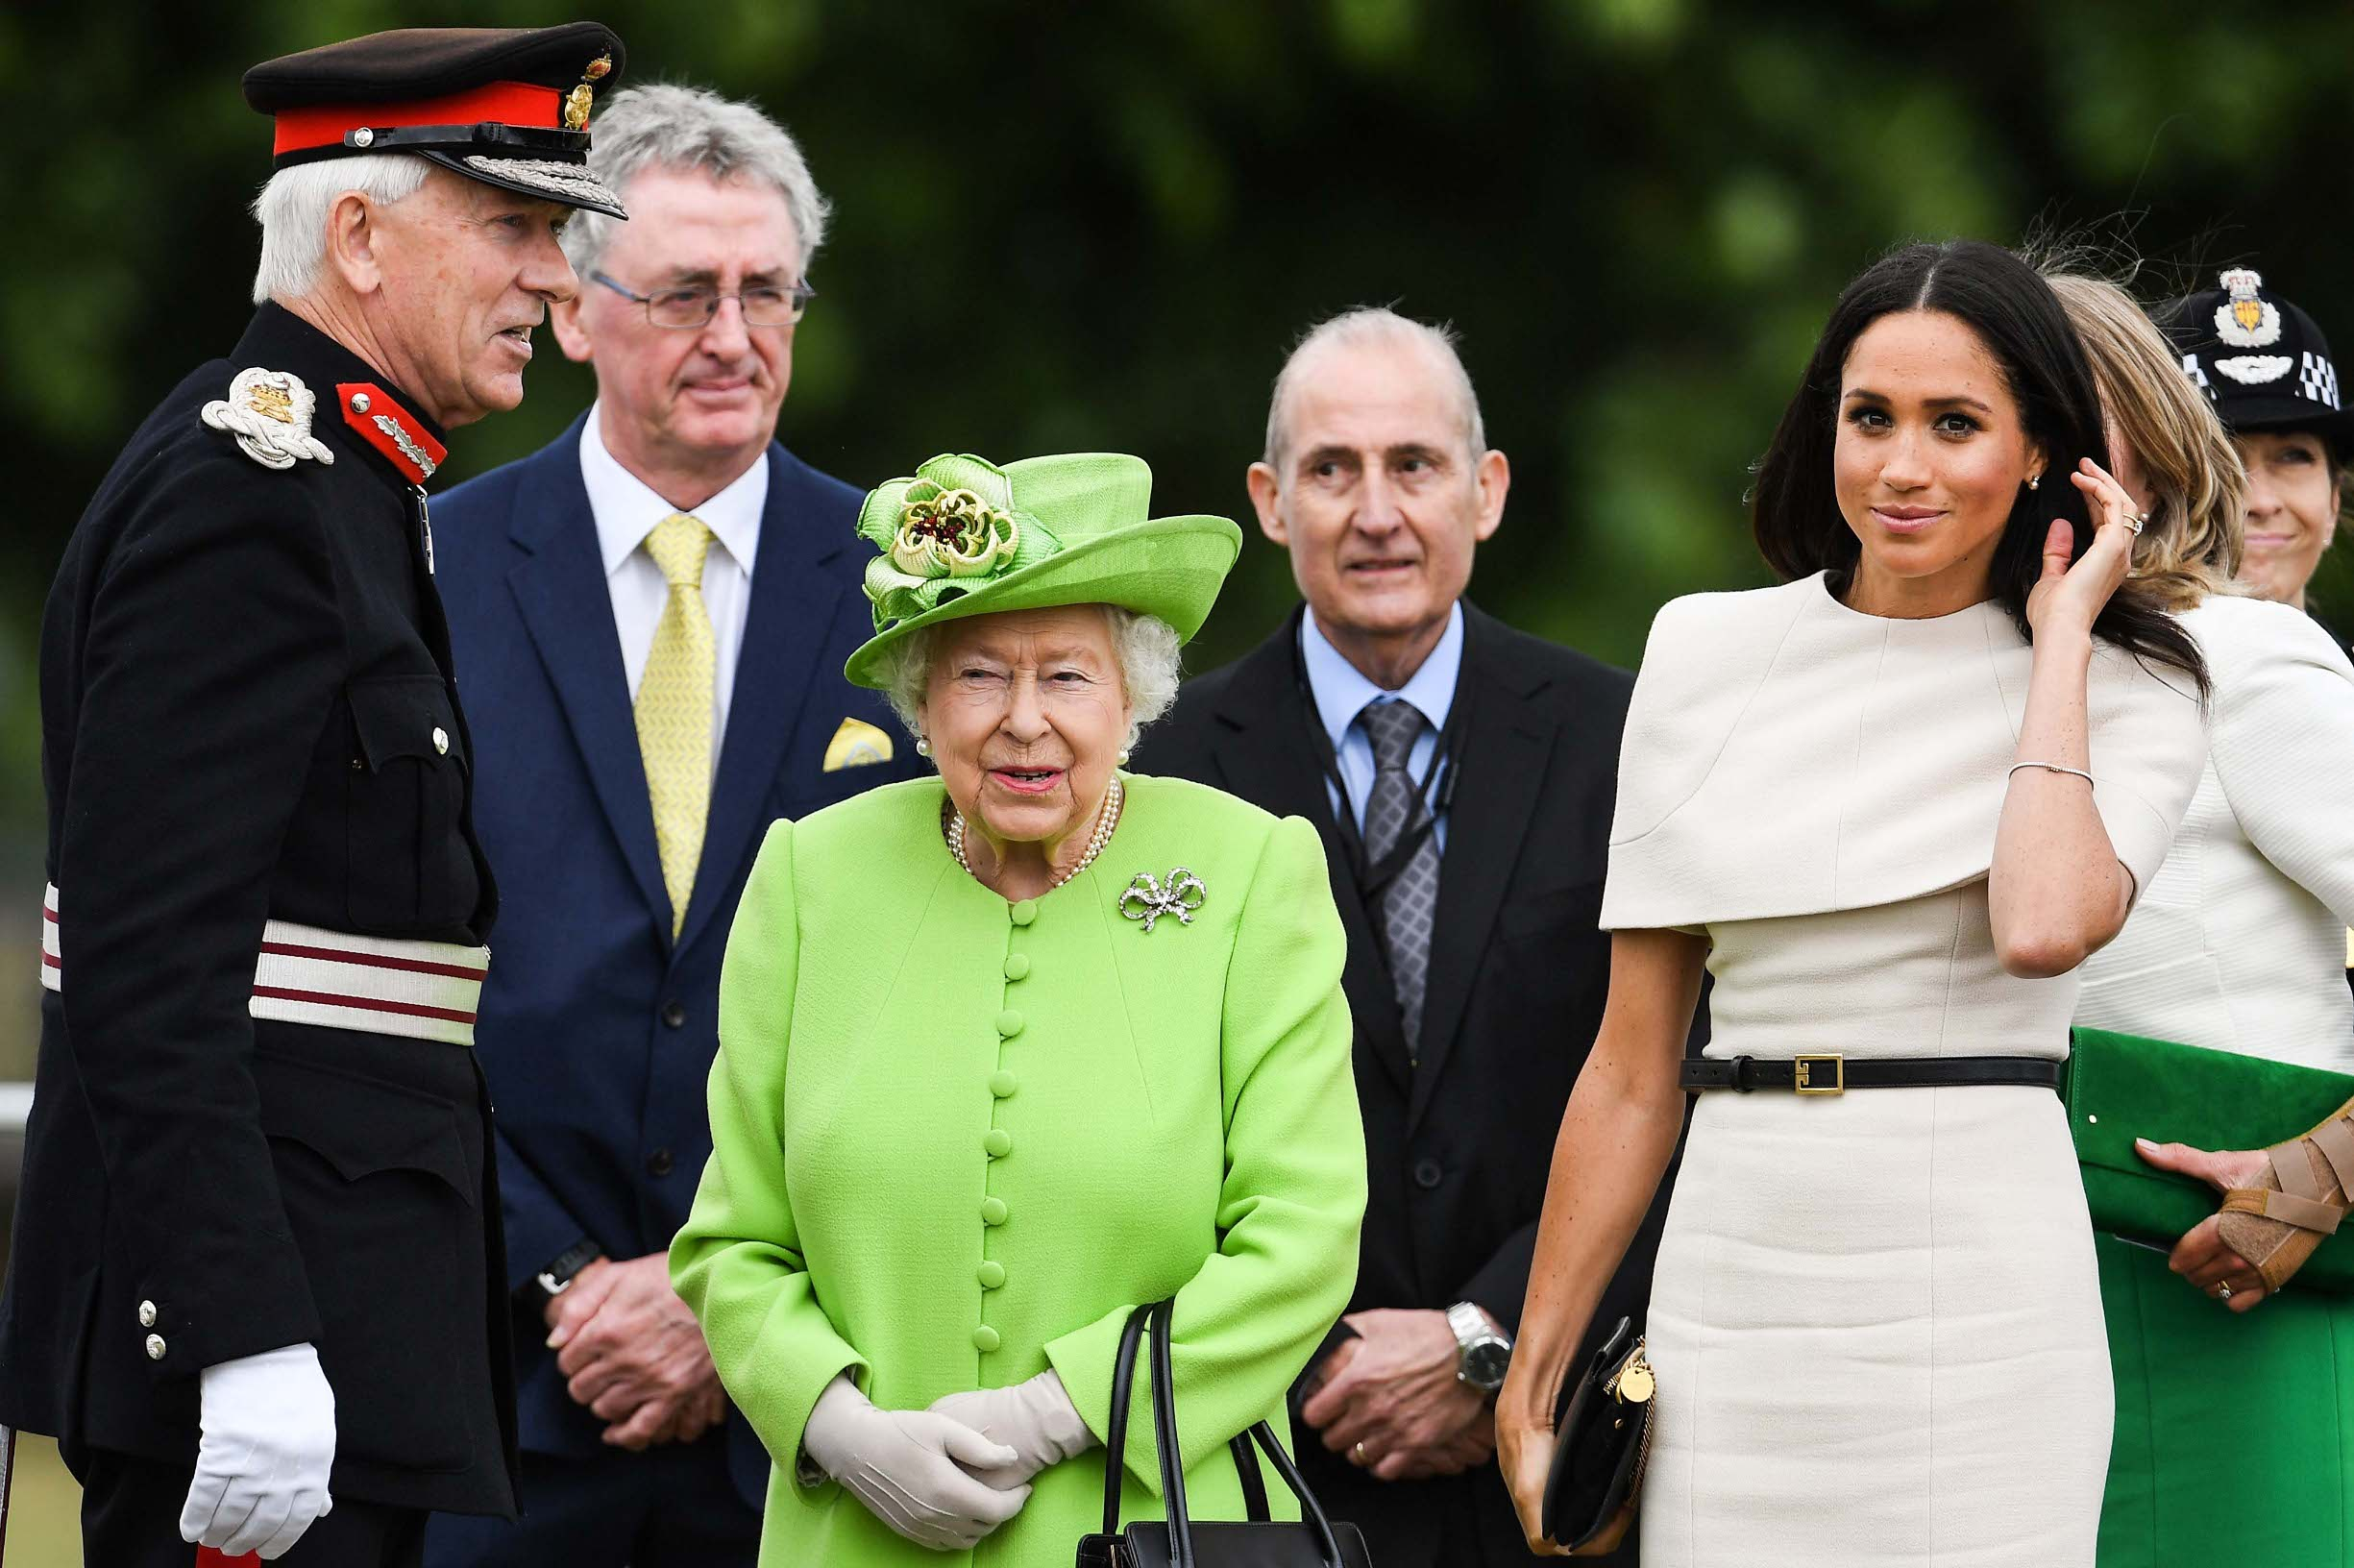 CHESTER, ENGLAND - JUNE 14:  Queen Elizabeth II and Meghan, Duchess of Sussex arrive to open the new Mersey Gateway Bridge on June 14, 2018 in the town of Widnes in Halton, Cheshire, England. Meghan Markle married Prince Harry last month to become The Duchess of Sussex and this is her first engagement with the Queen. During the visit the pair will open a road bridge in Widnes and visit The Storyhouse and Town Hall in Chester.  (Photo by Jeff J Mitchell/Getty Images)